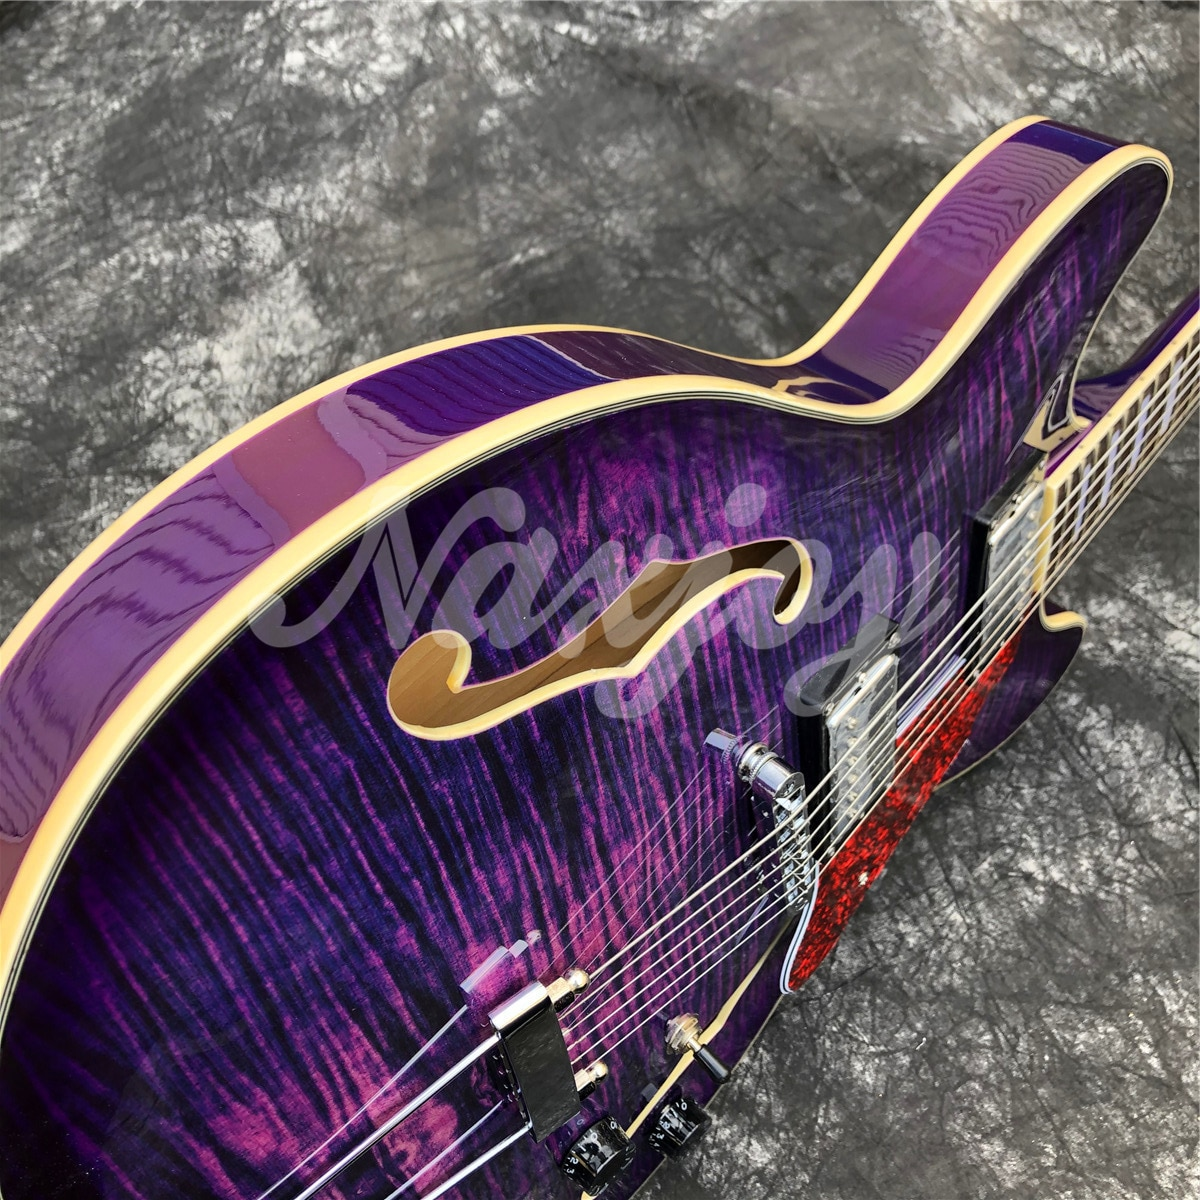 Grote Deep Purple Flame Top Electric Guitar,Double F holes Semi Hollow Maple Wood Jazz Guitarra,Real Photos enlarge